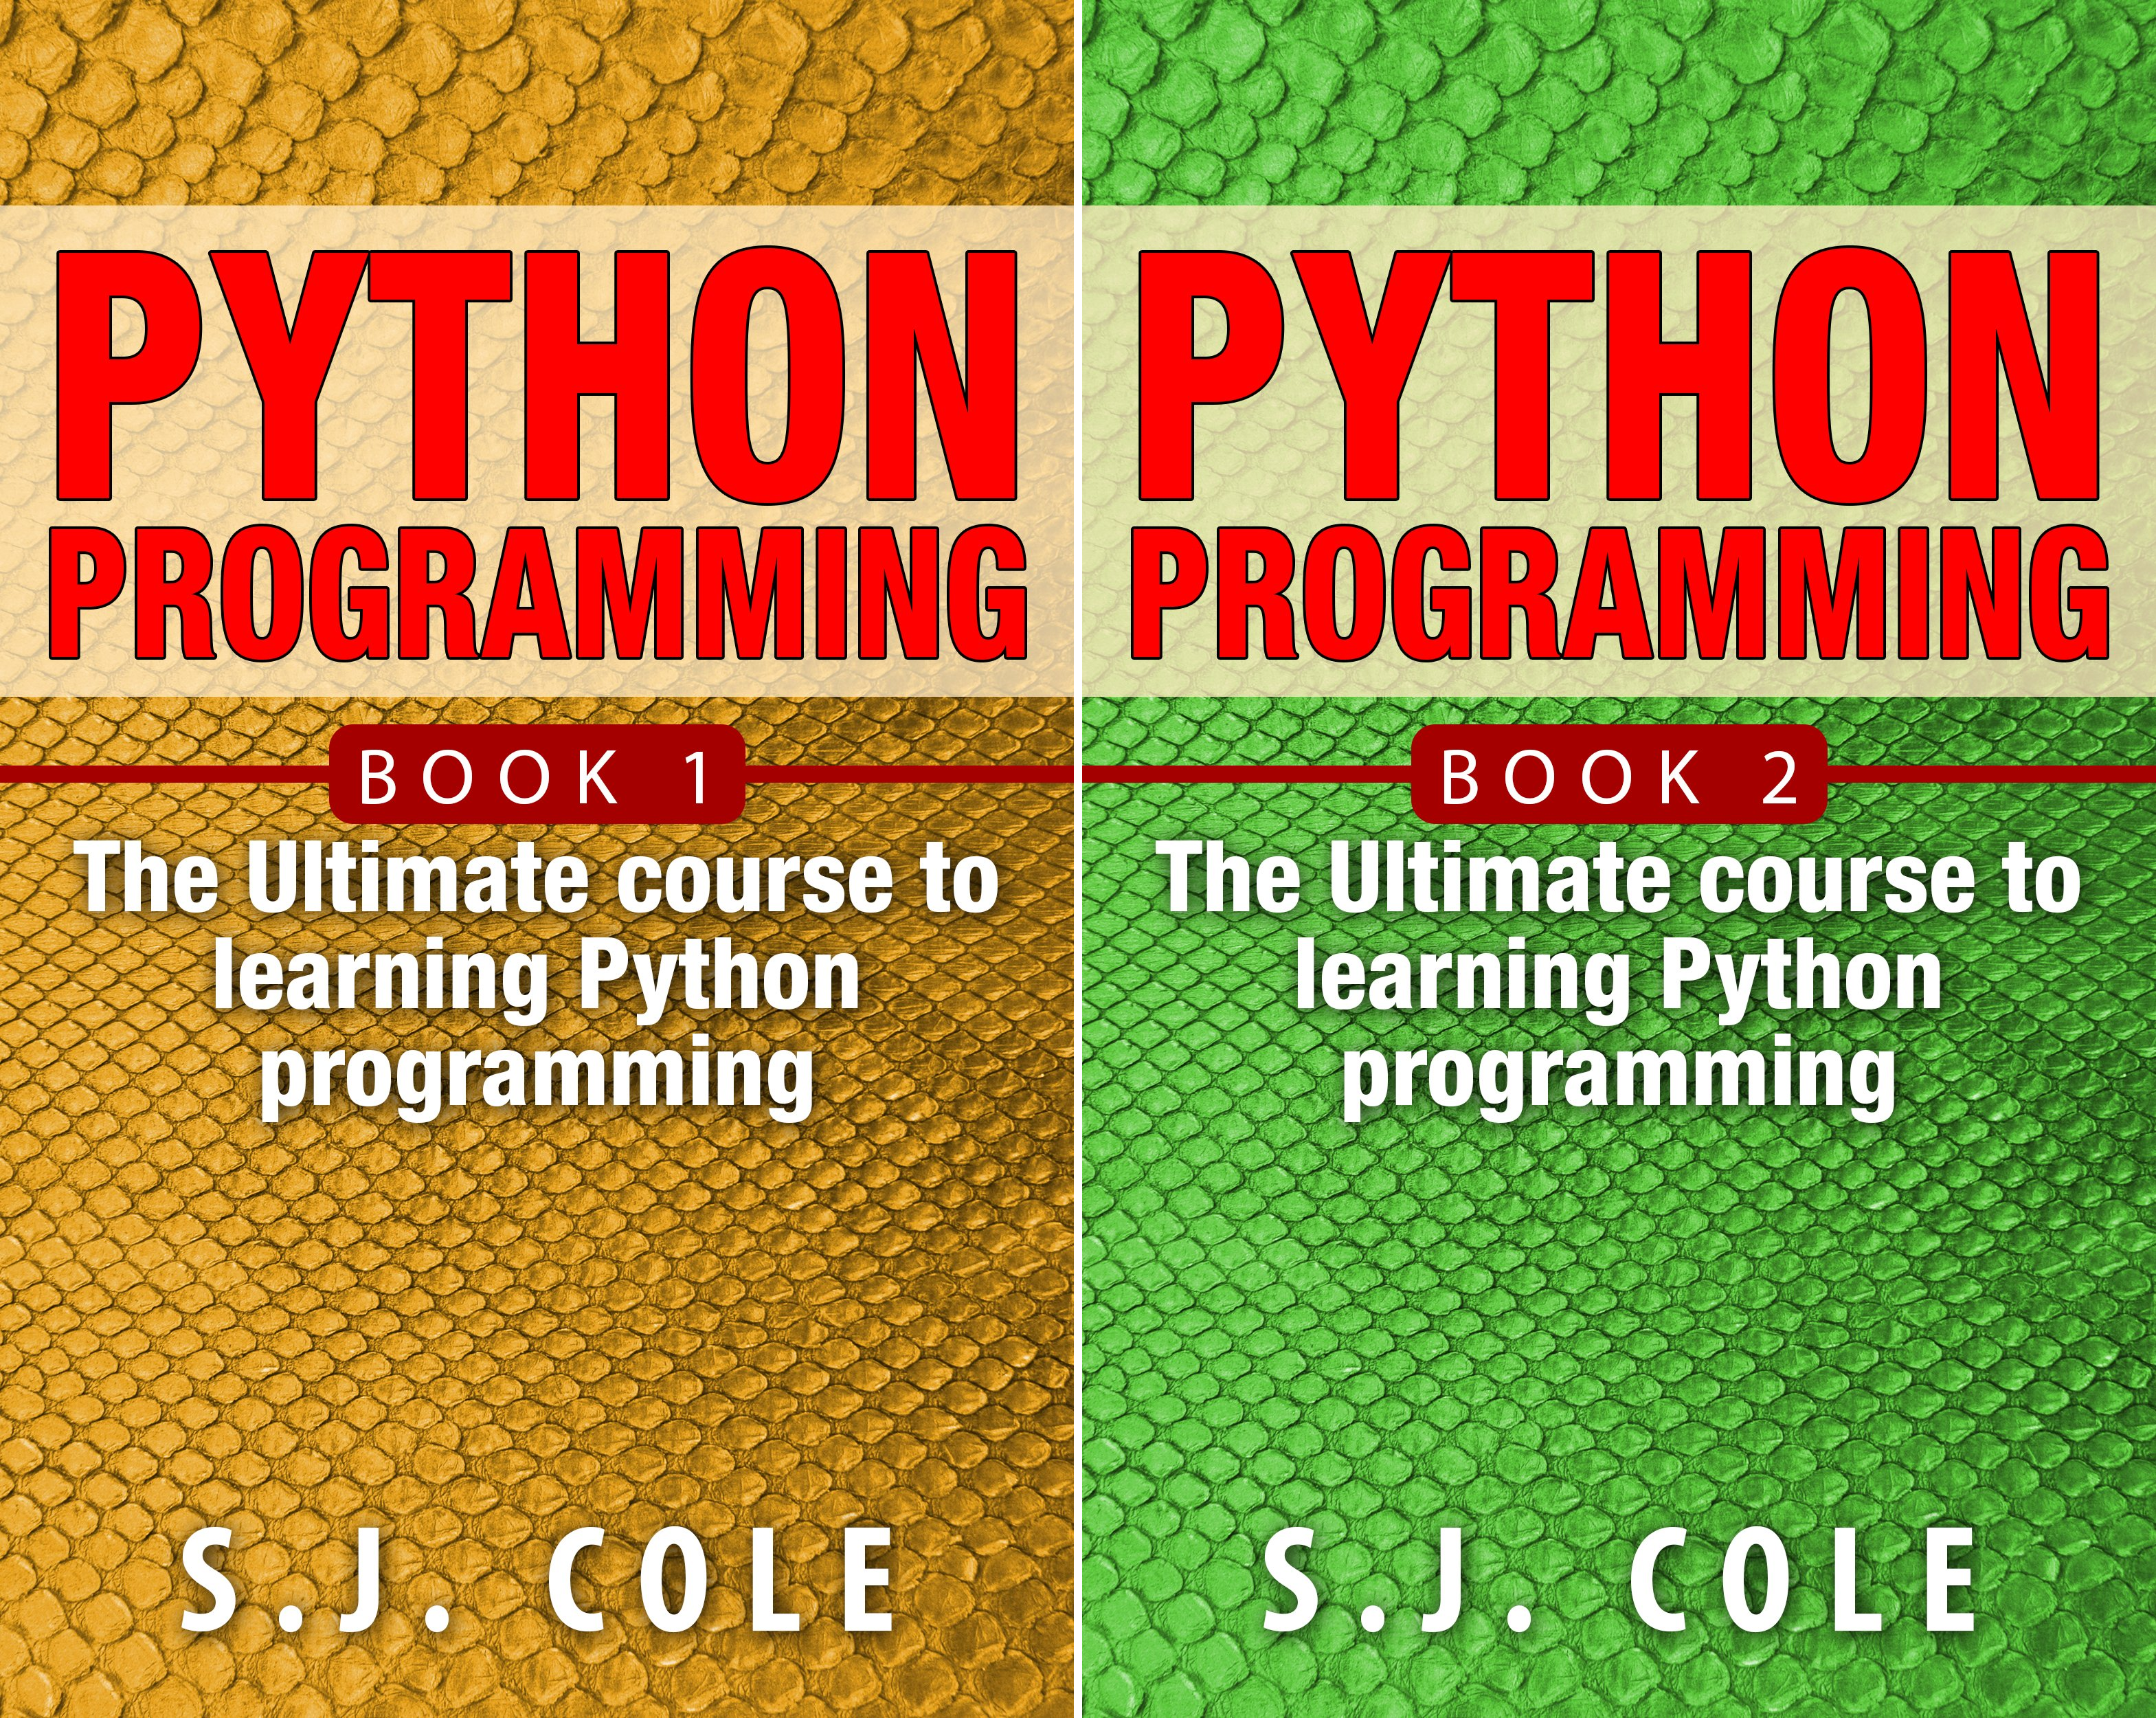 Python Programming for Complete Beginners (2 Book Series)